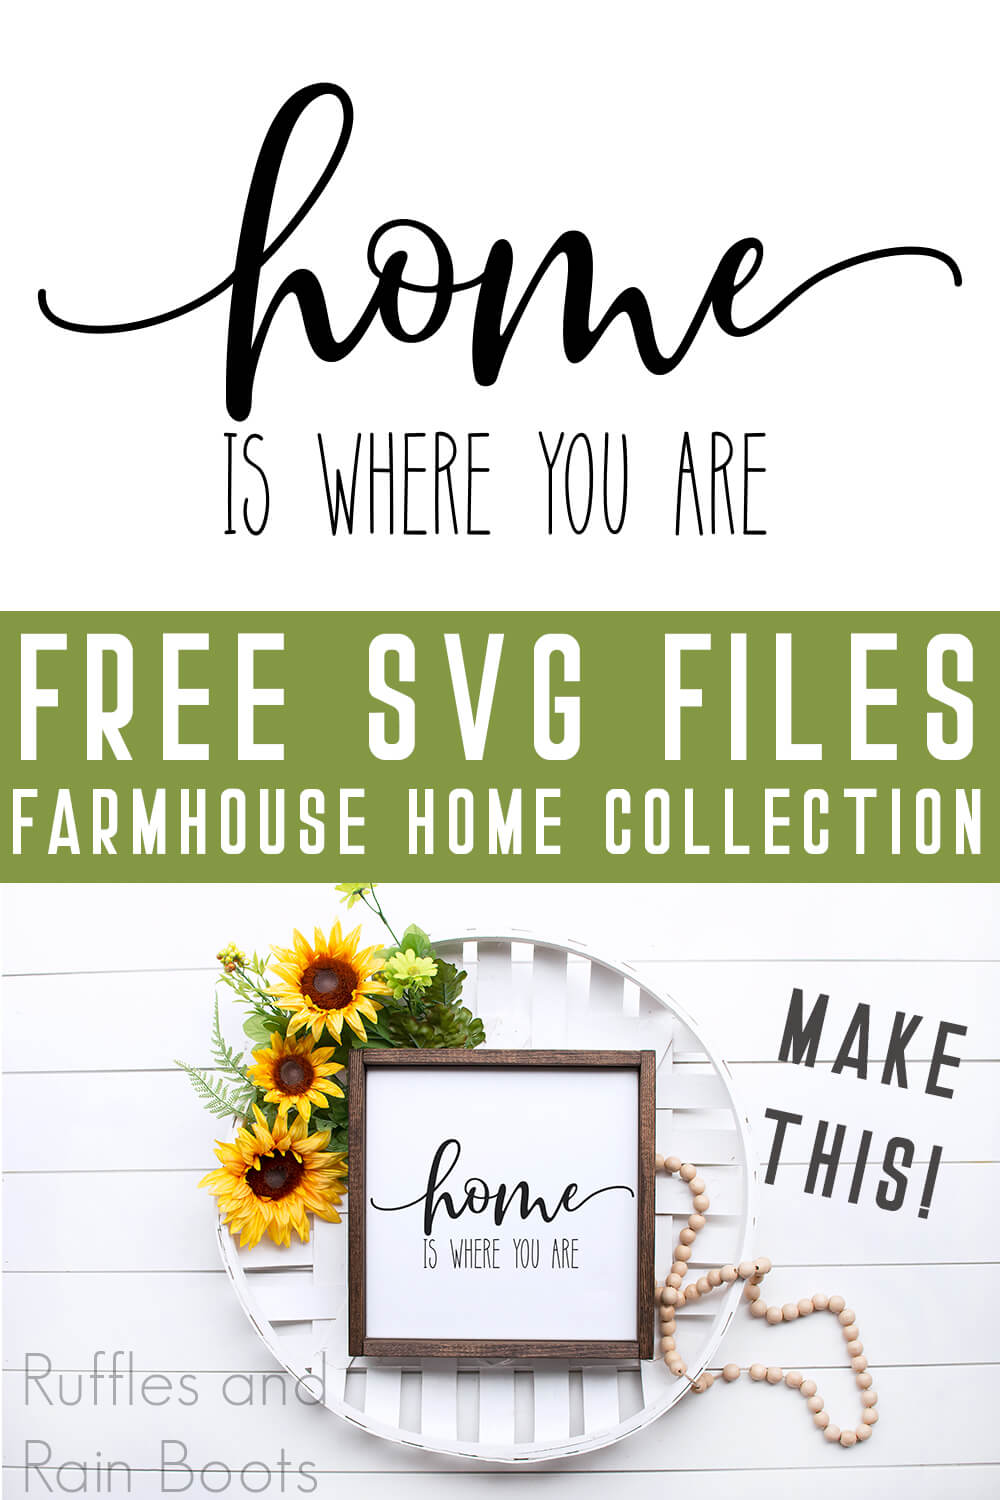 photo collage of home is where you are cut file for Silhouette or Cricut on sunflower sign with text which reads free svg files farmhouse home collection make this!